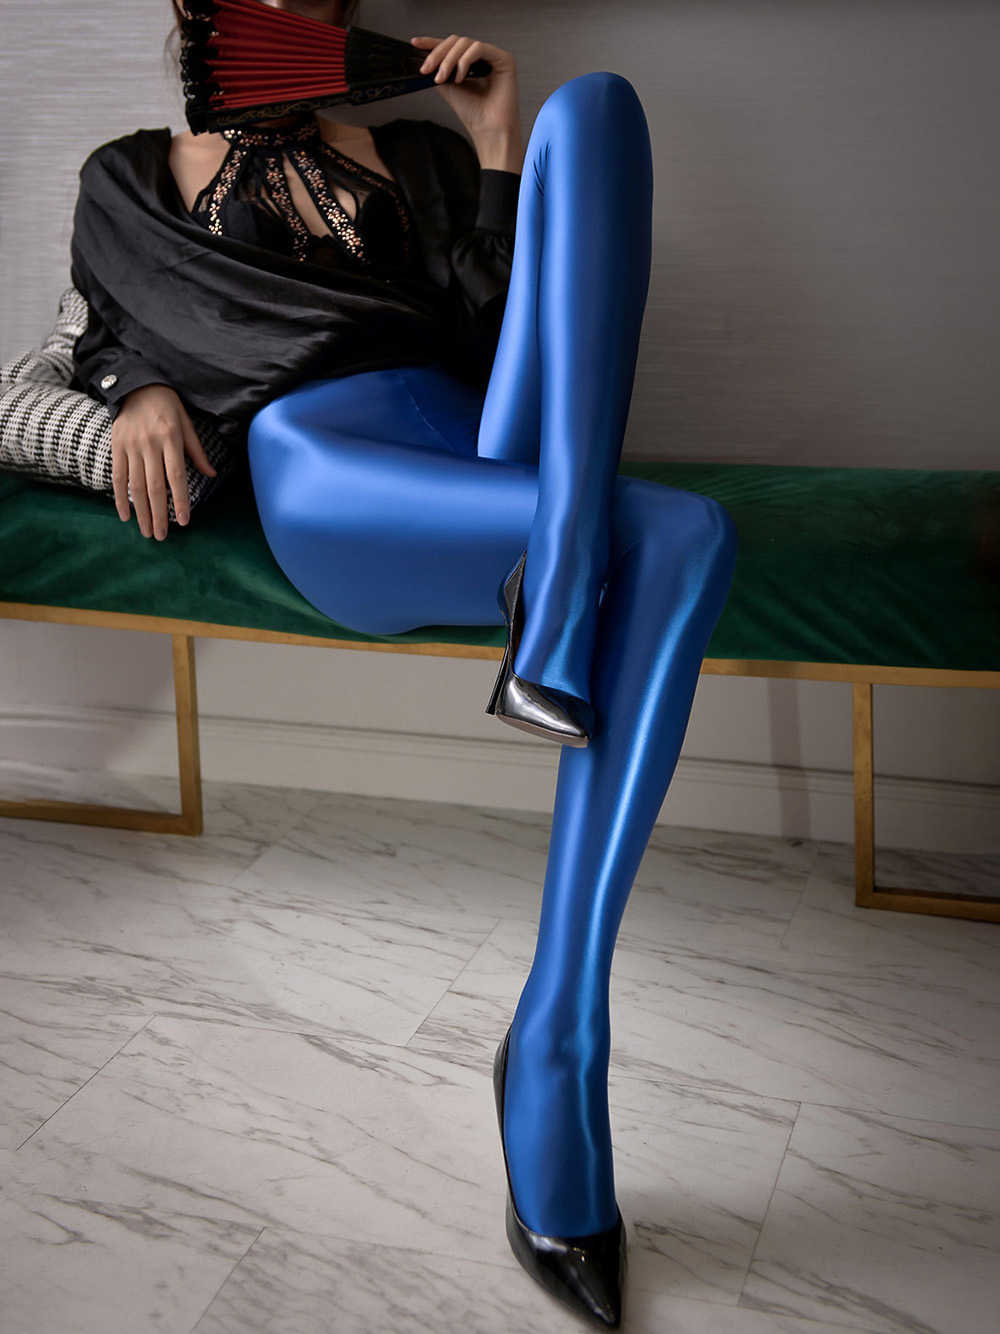 Shiny Spandex Strumpfhosen/Leggings